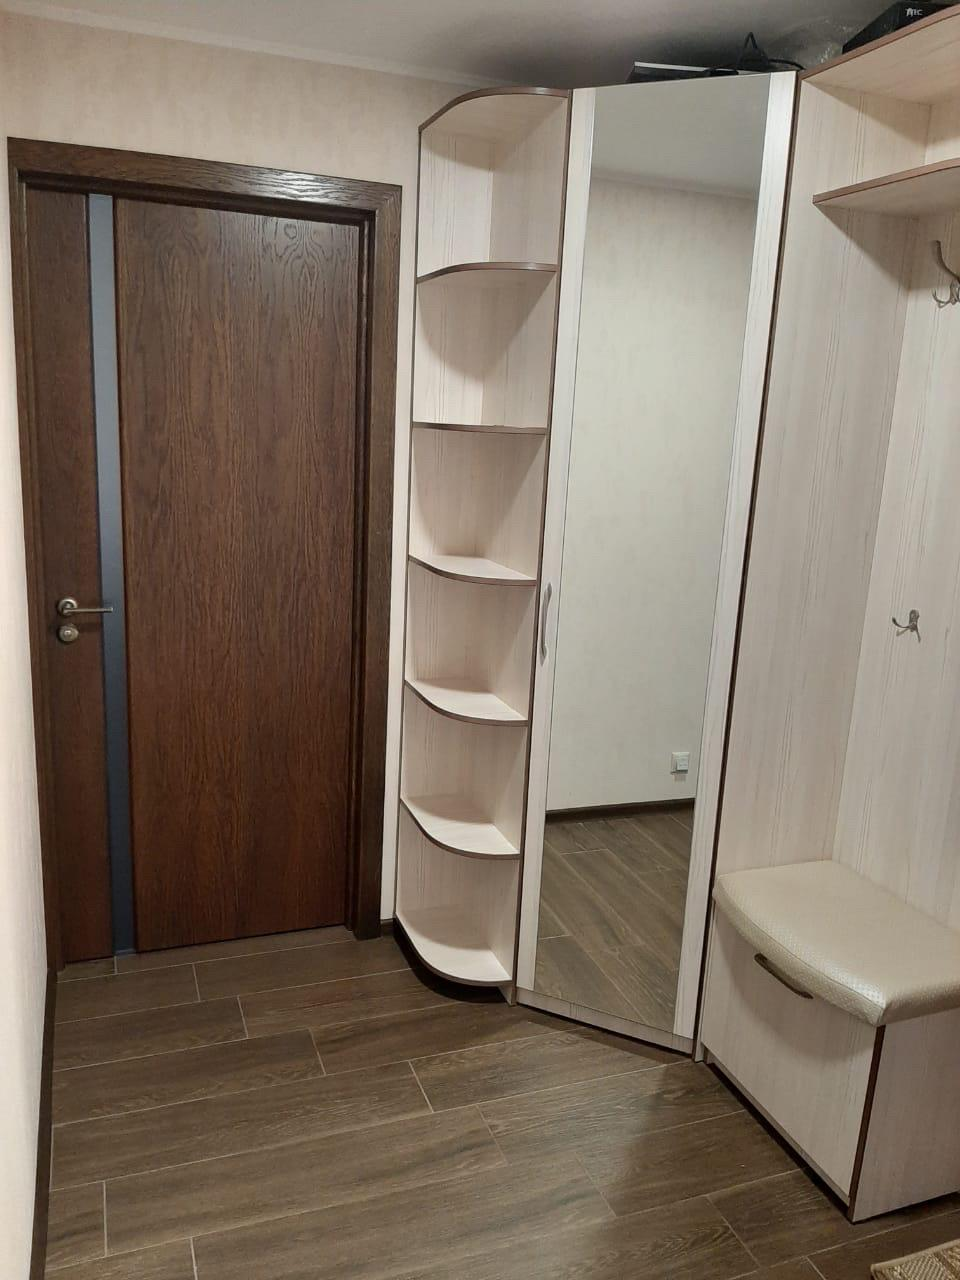 Apartment, 2 rooms, 48 m2 in Moscow 89999089562 buy 6